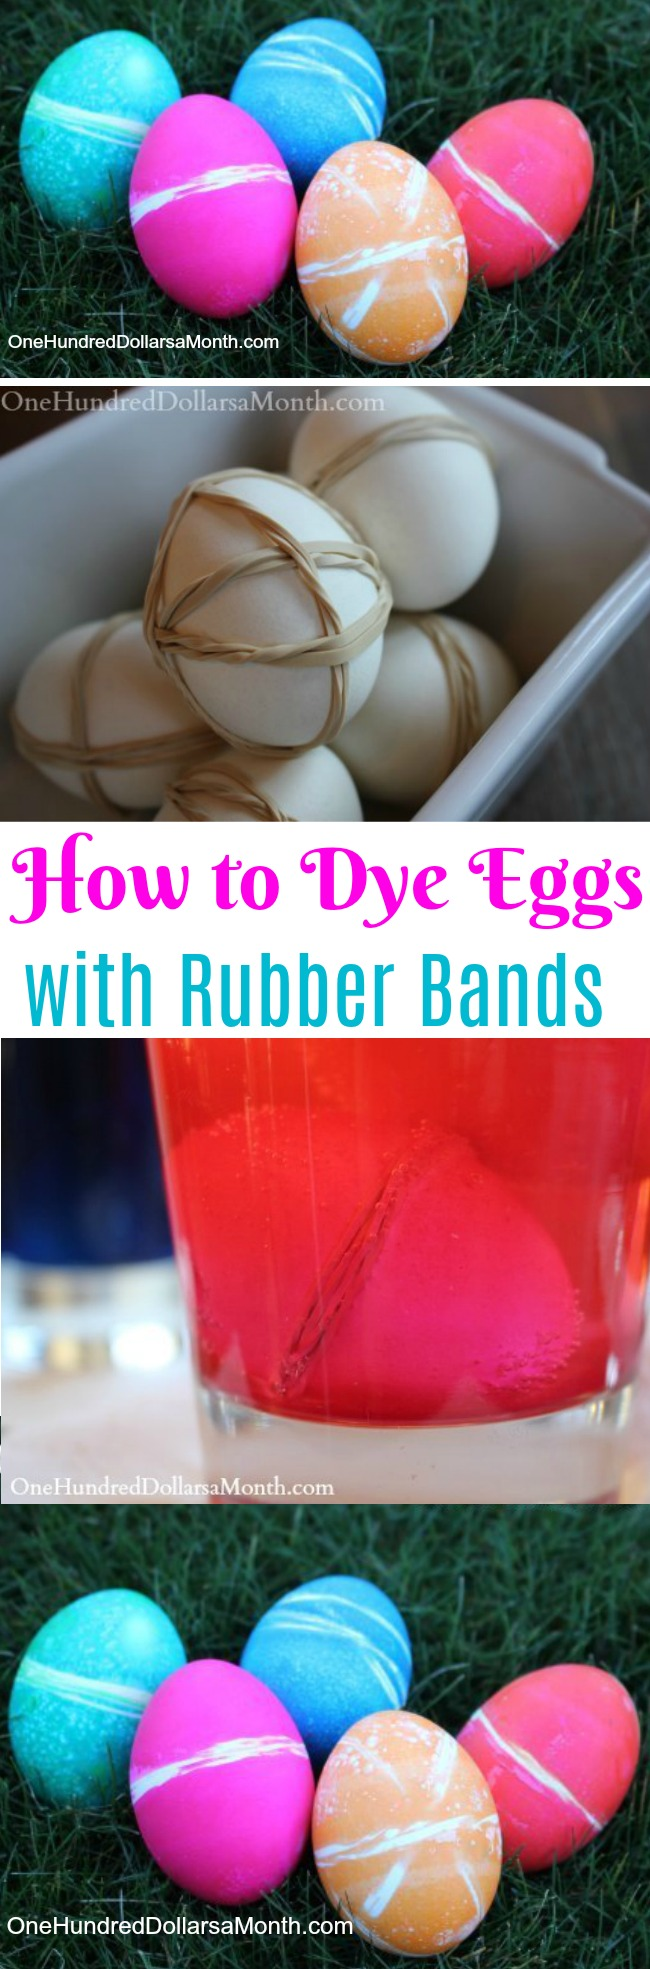 Kids Easter Crafts – How to Dye Eggs with Rubber Bands